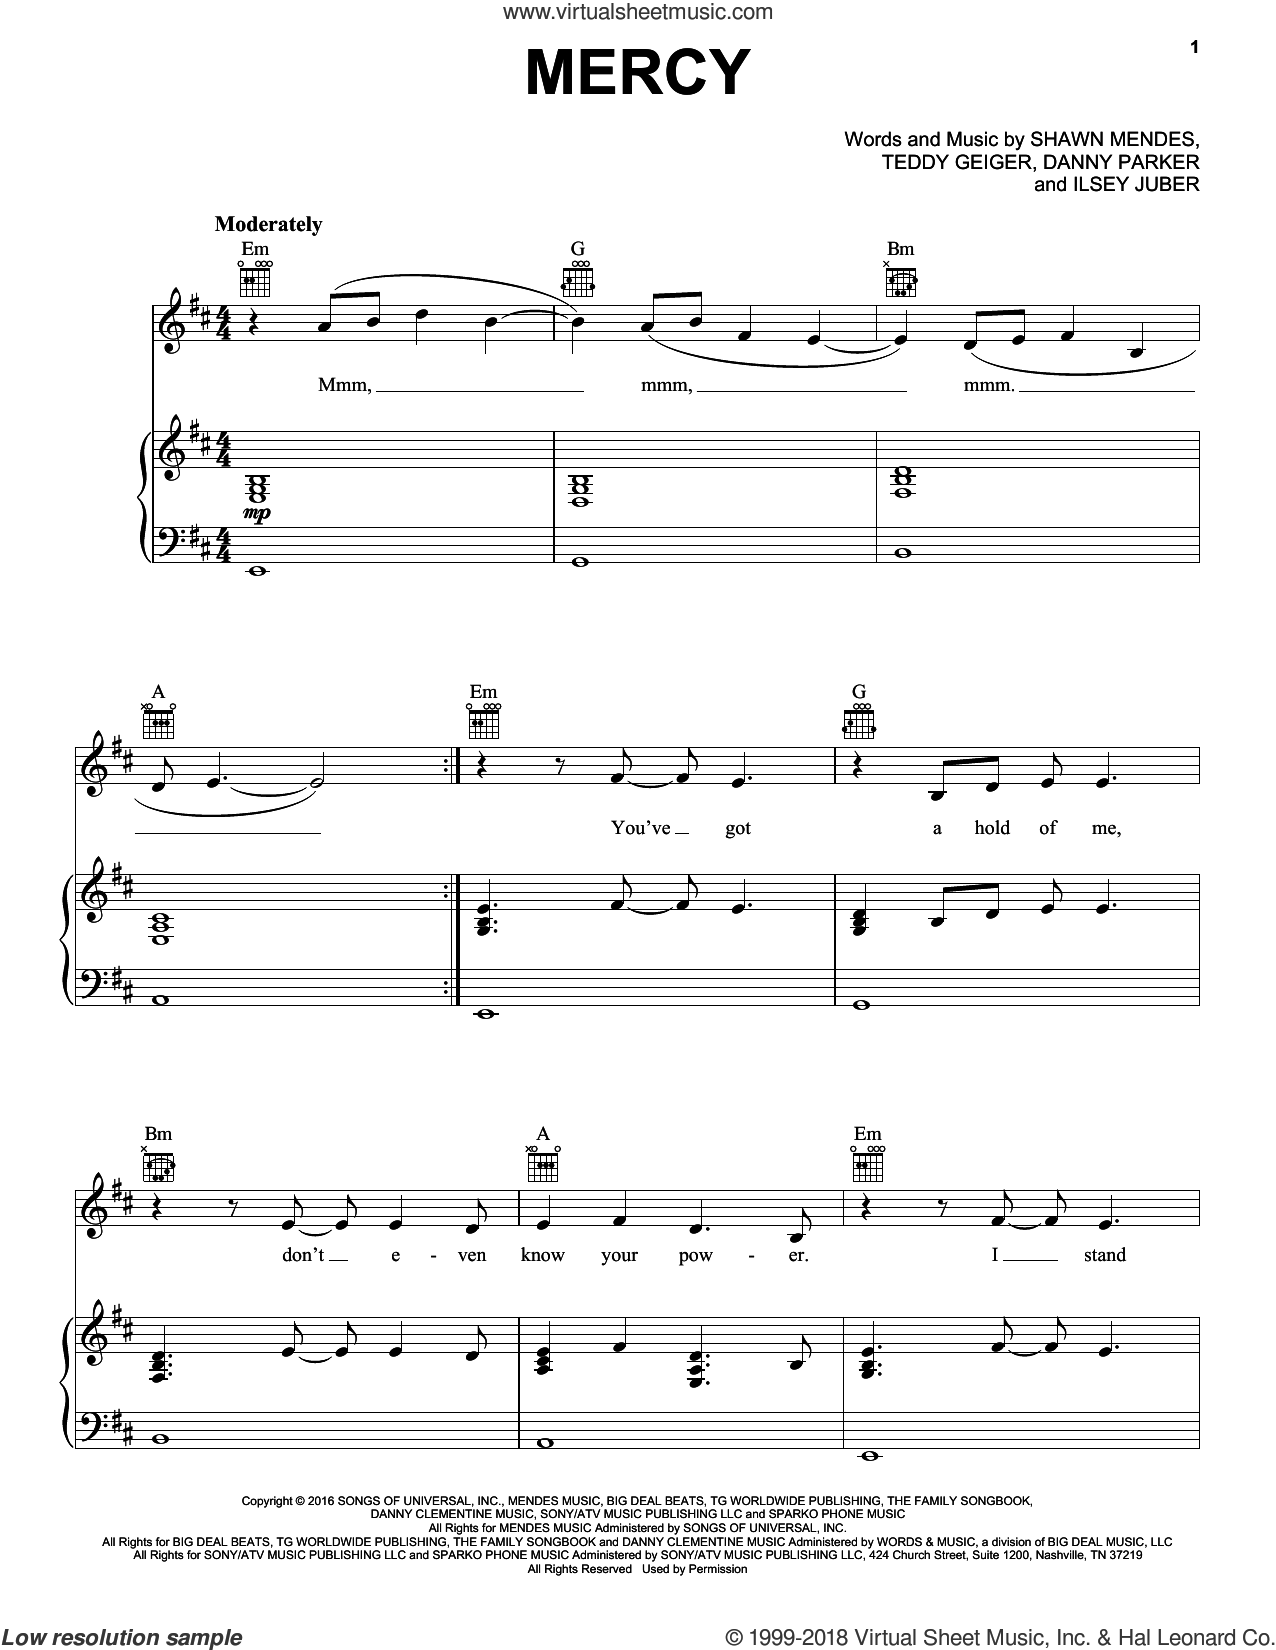 Mercy sheet music for voice, piano or guitar by Shawn Mendes, Danny Parker, Isley Juber and Teddy Geiger, intermediate. Score Image Preview.